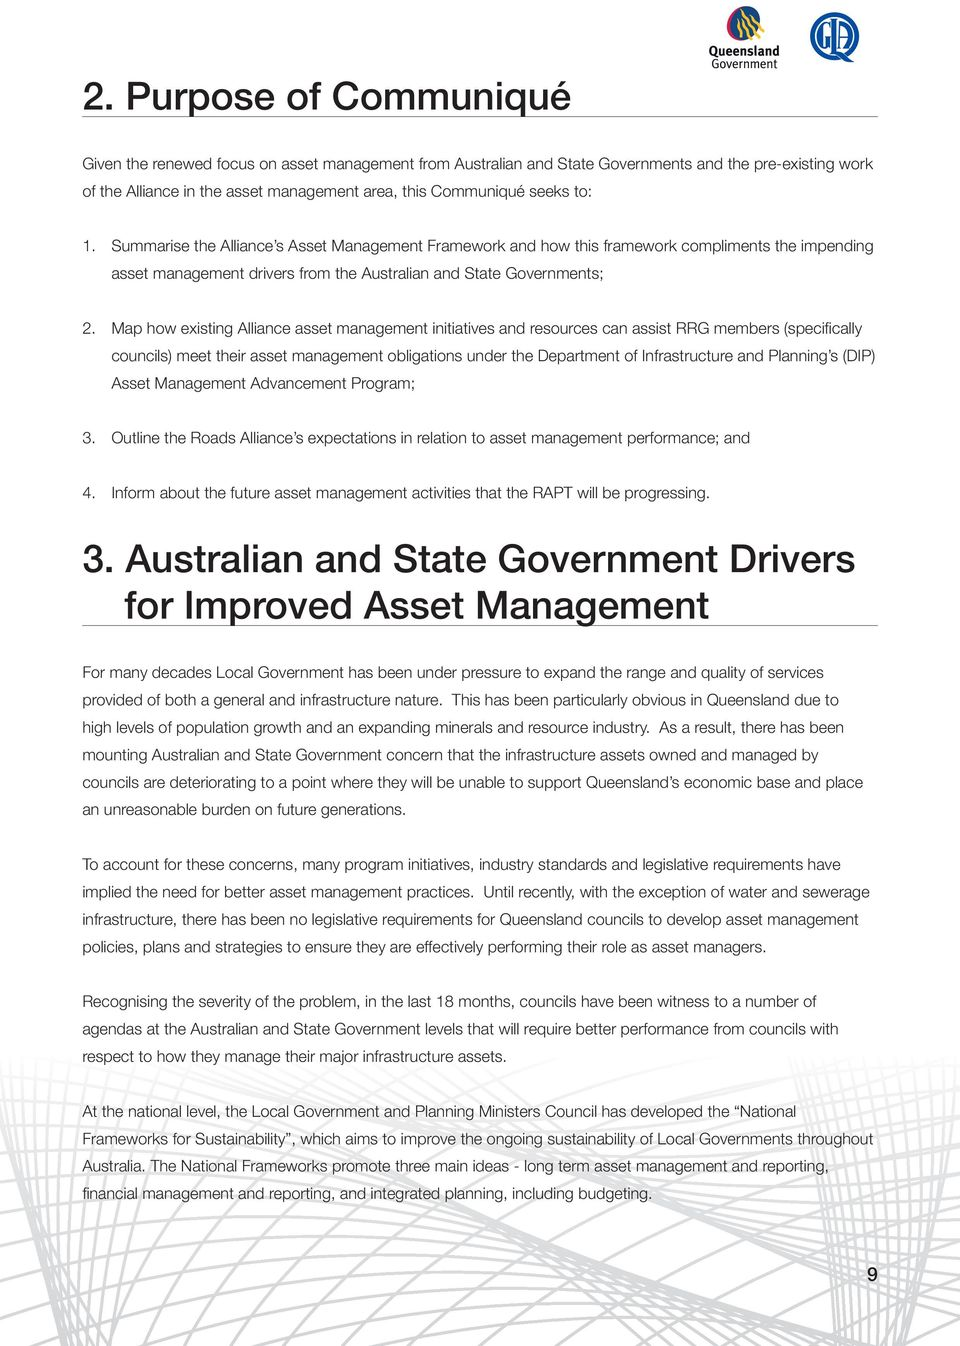 Map how existing Alliance asset management initiatives and resources can assist RRG members (specifically councils) meet their asset management obligations under the Department of Infrastructure and